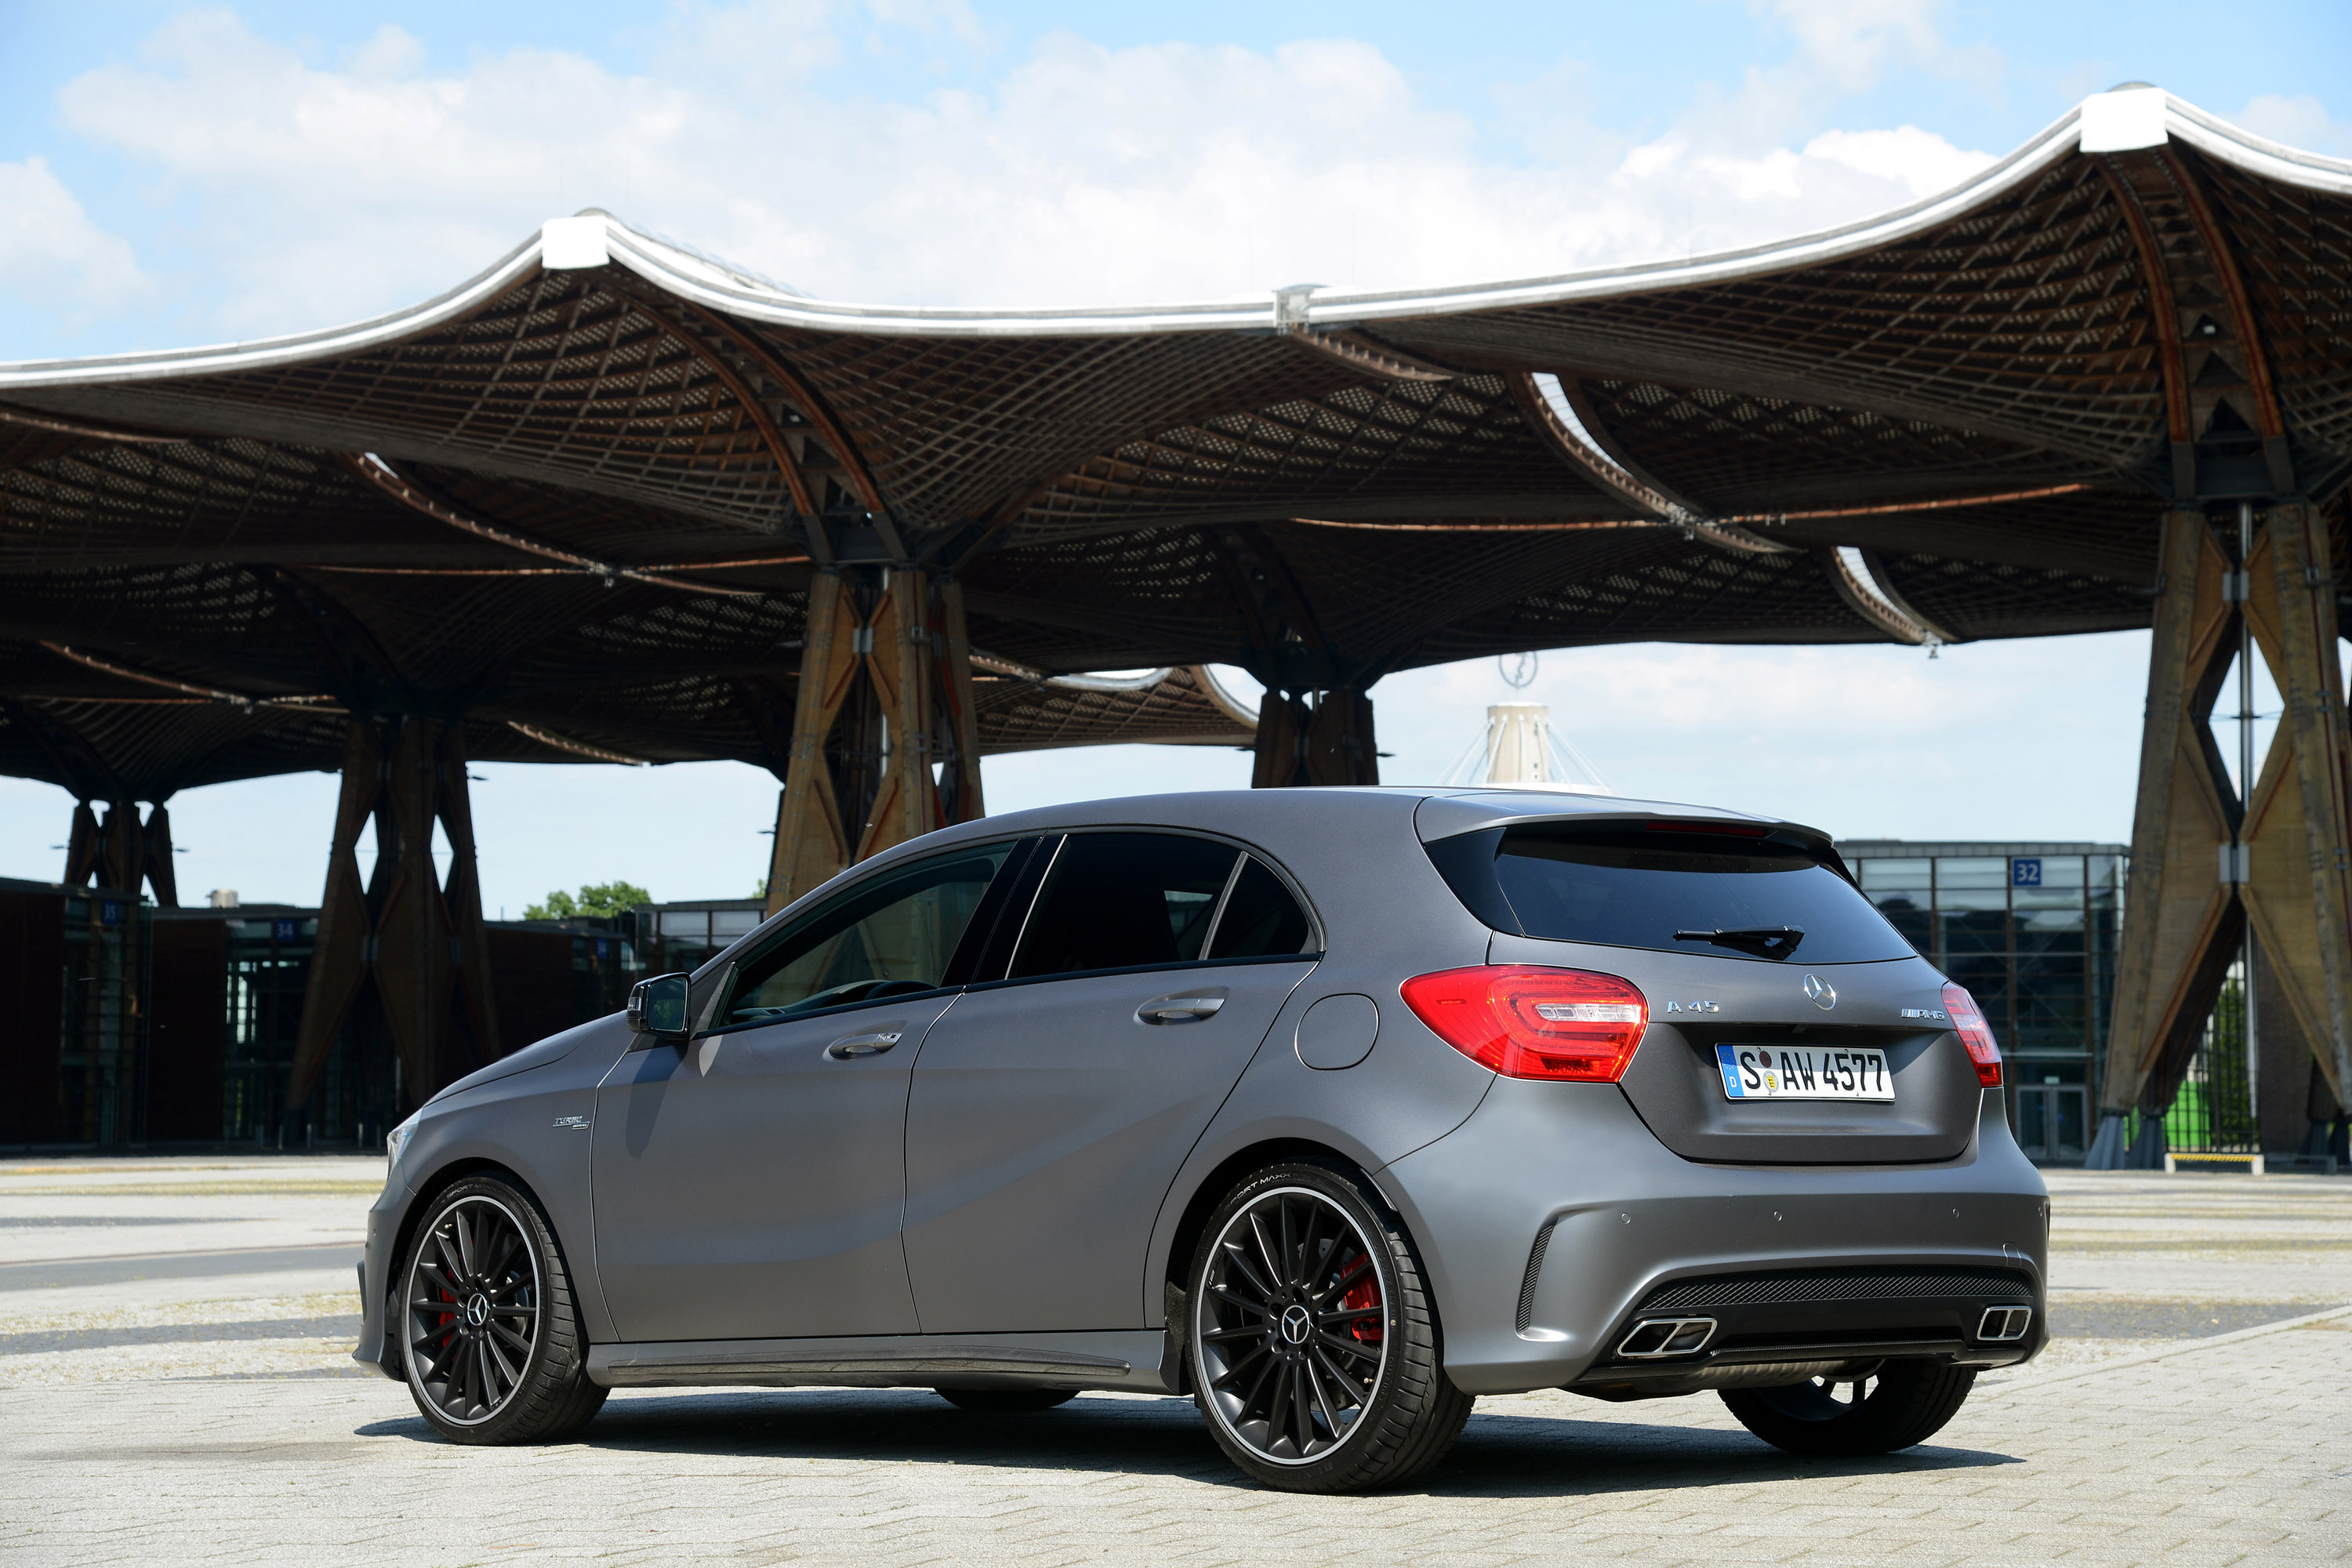 2013 mercedes benz a 45 amg uk price 37 845 for Price for mercedes benz